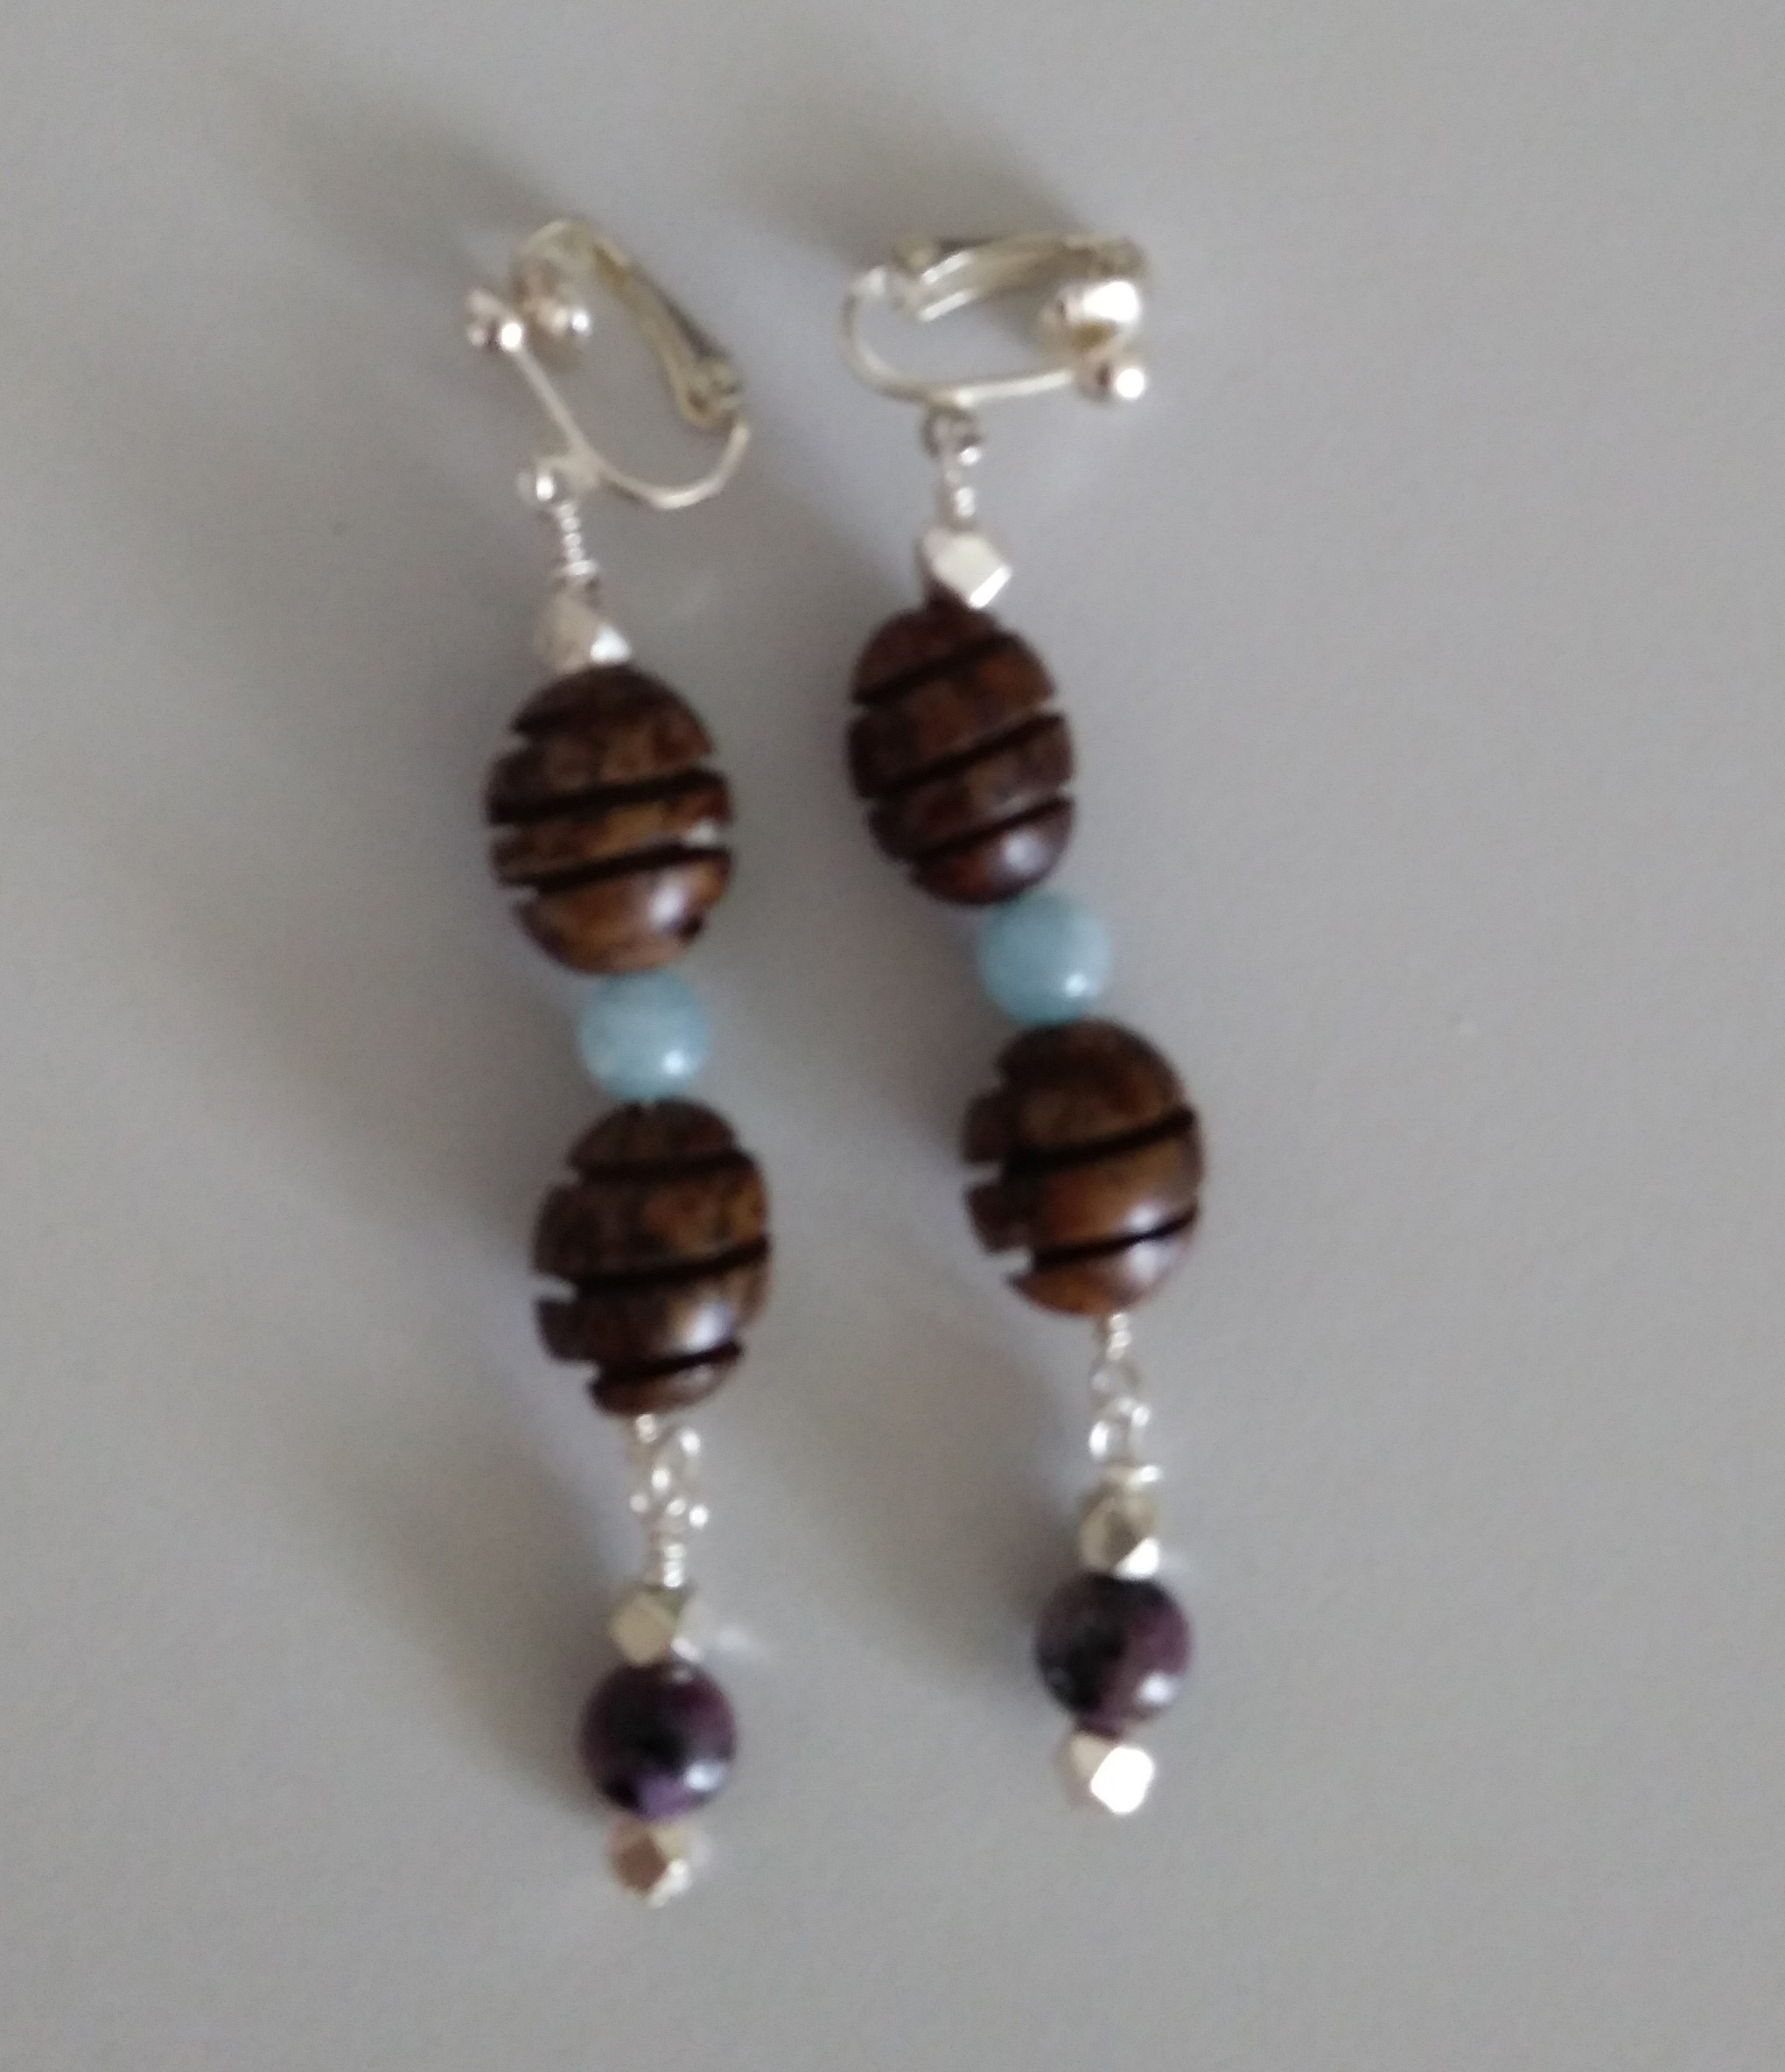 Aquamarine, Charoite, Wood Beads with Sterling Silver Beads Ear-Rings